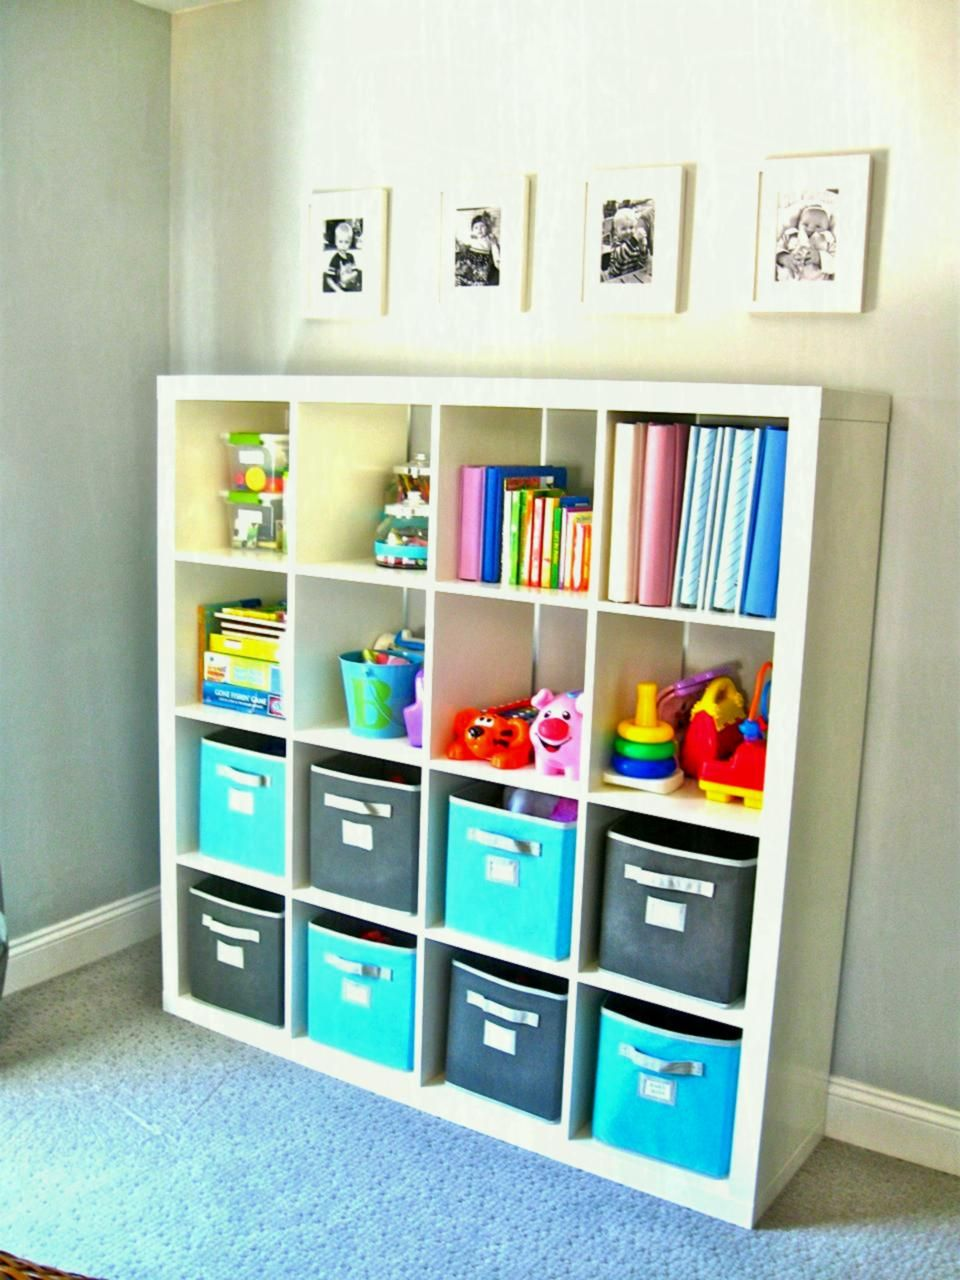 25 Best Diy Bookshelf Ideas To Decorate Room And Organize Your